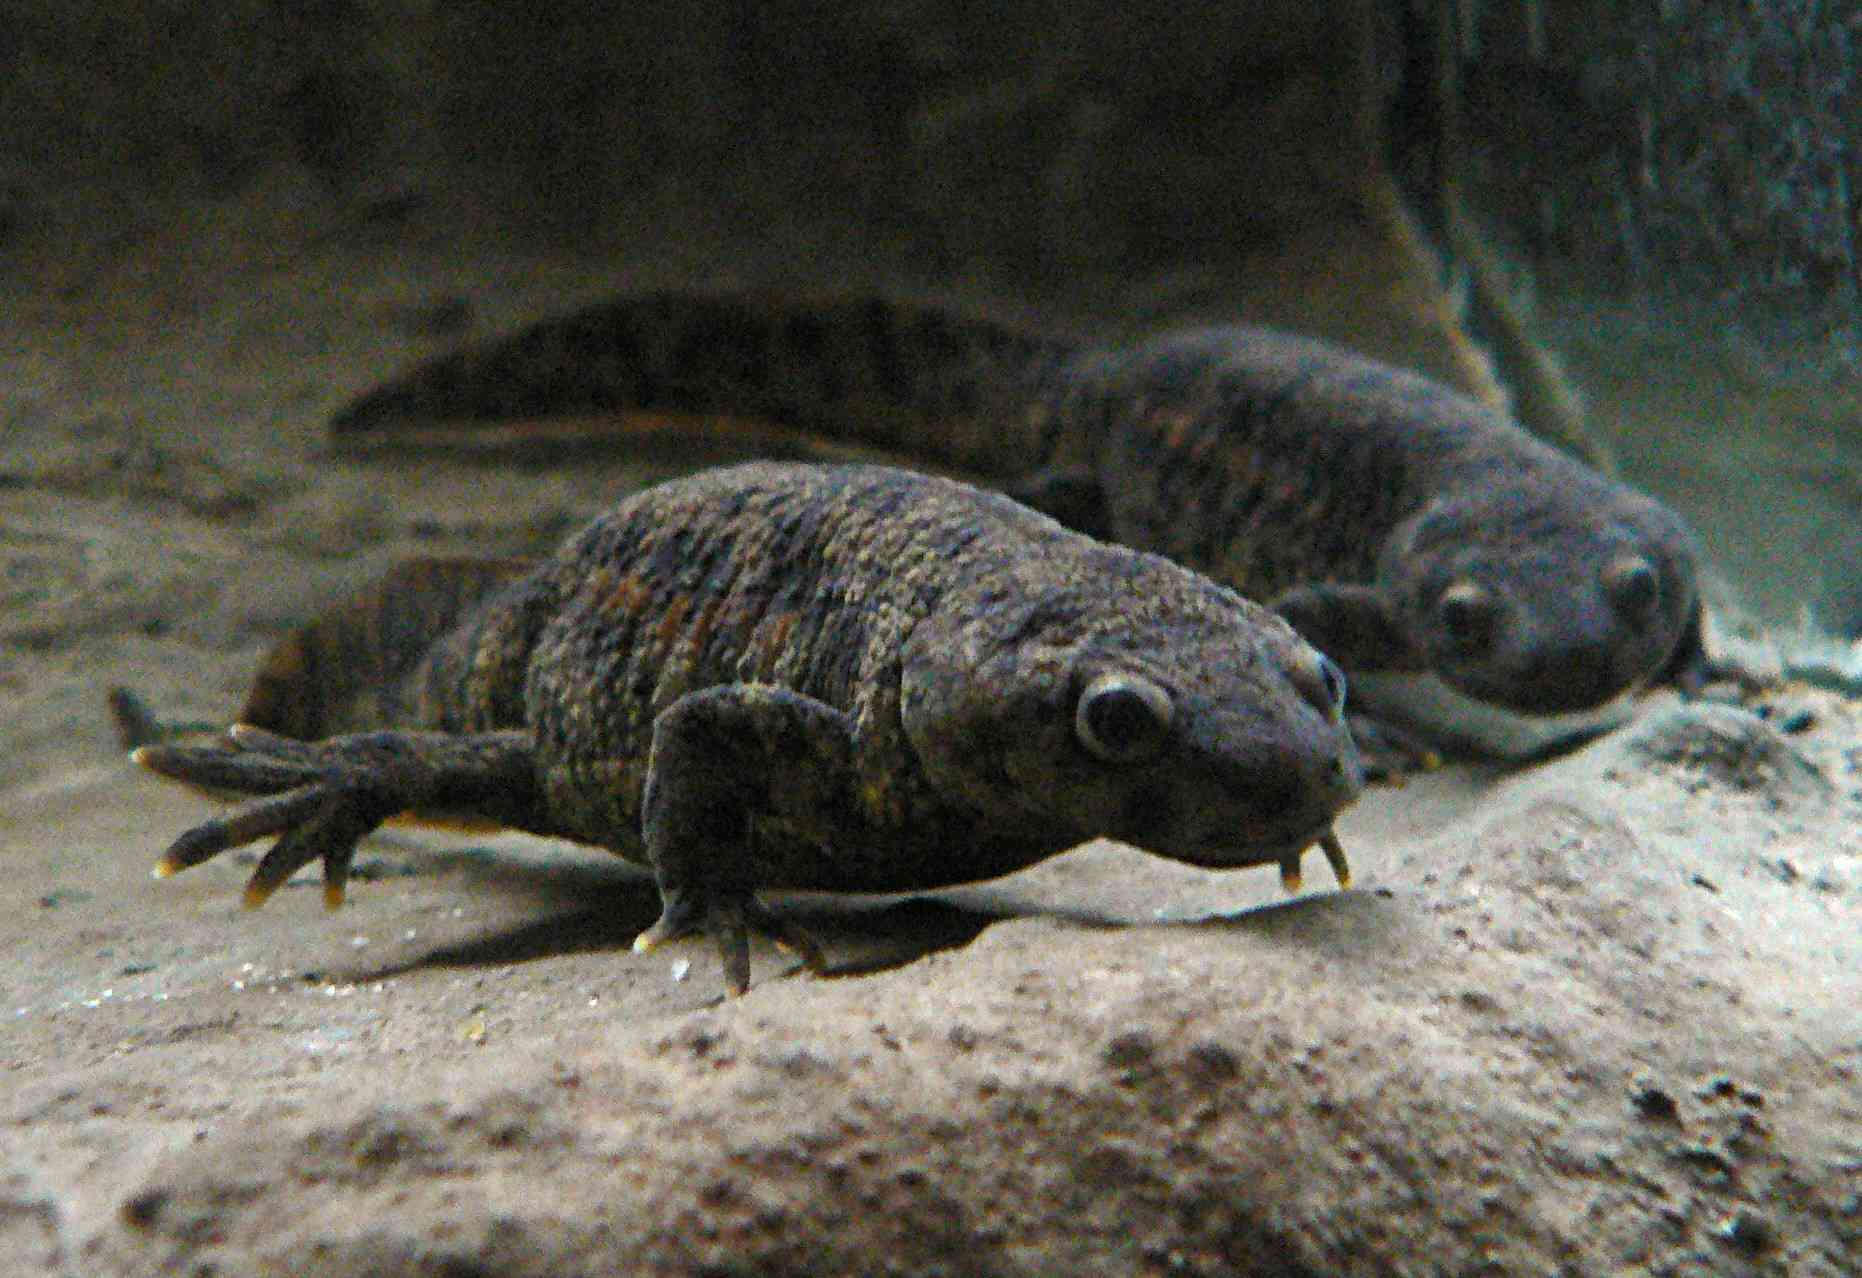 This unusual species of newt uses its own ribs as a weapon.